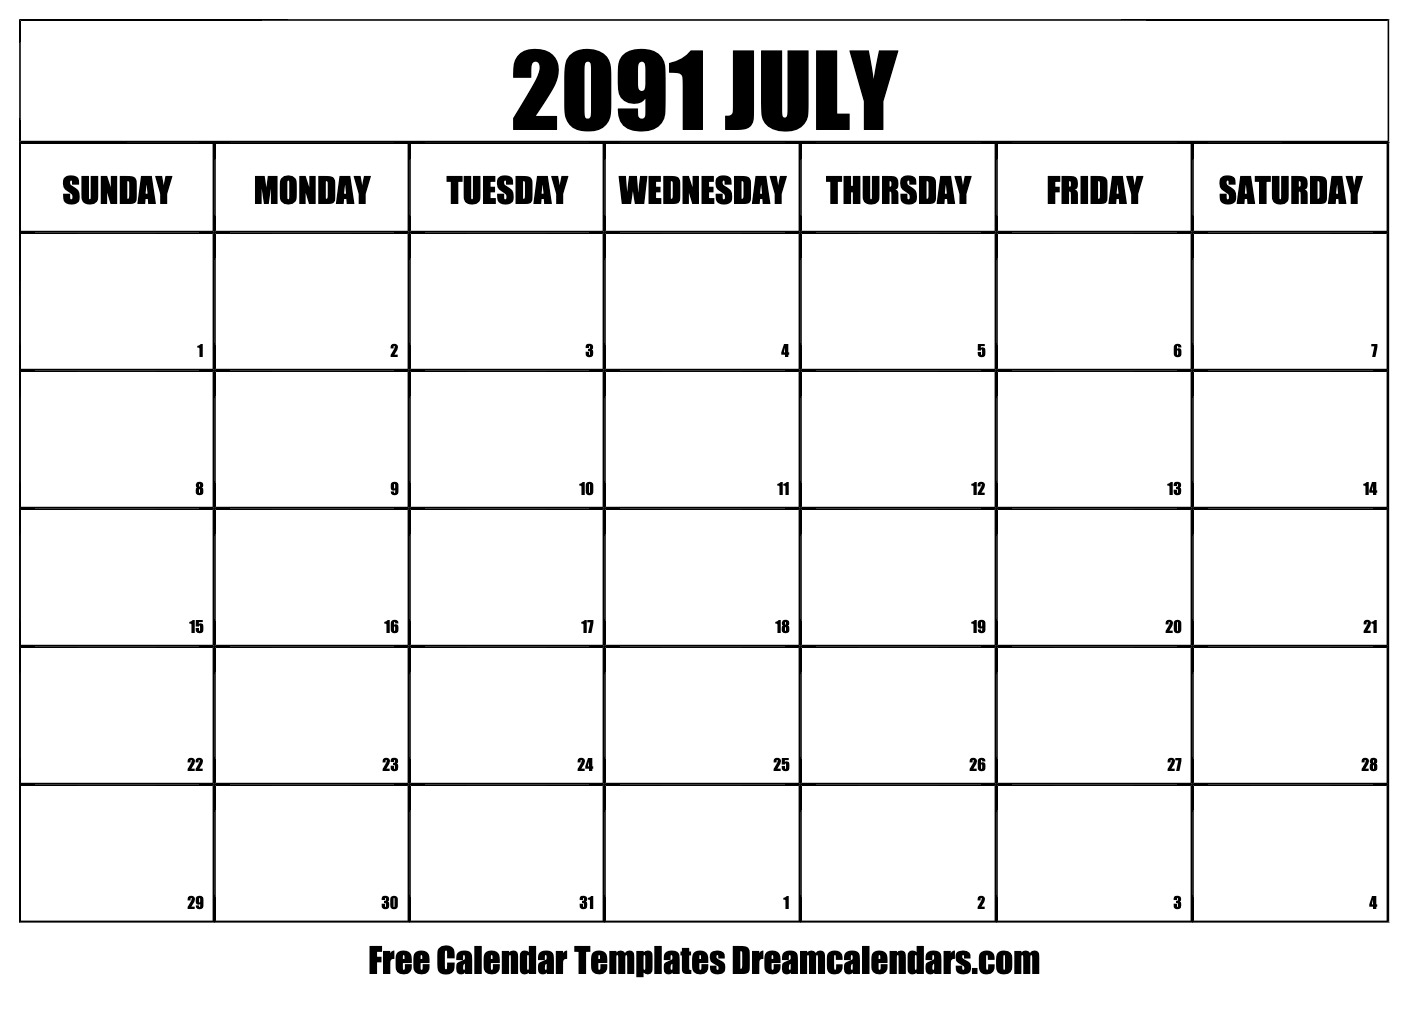 photograph regarding Free Printable July Calendar named Printable July 2091 Calendar